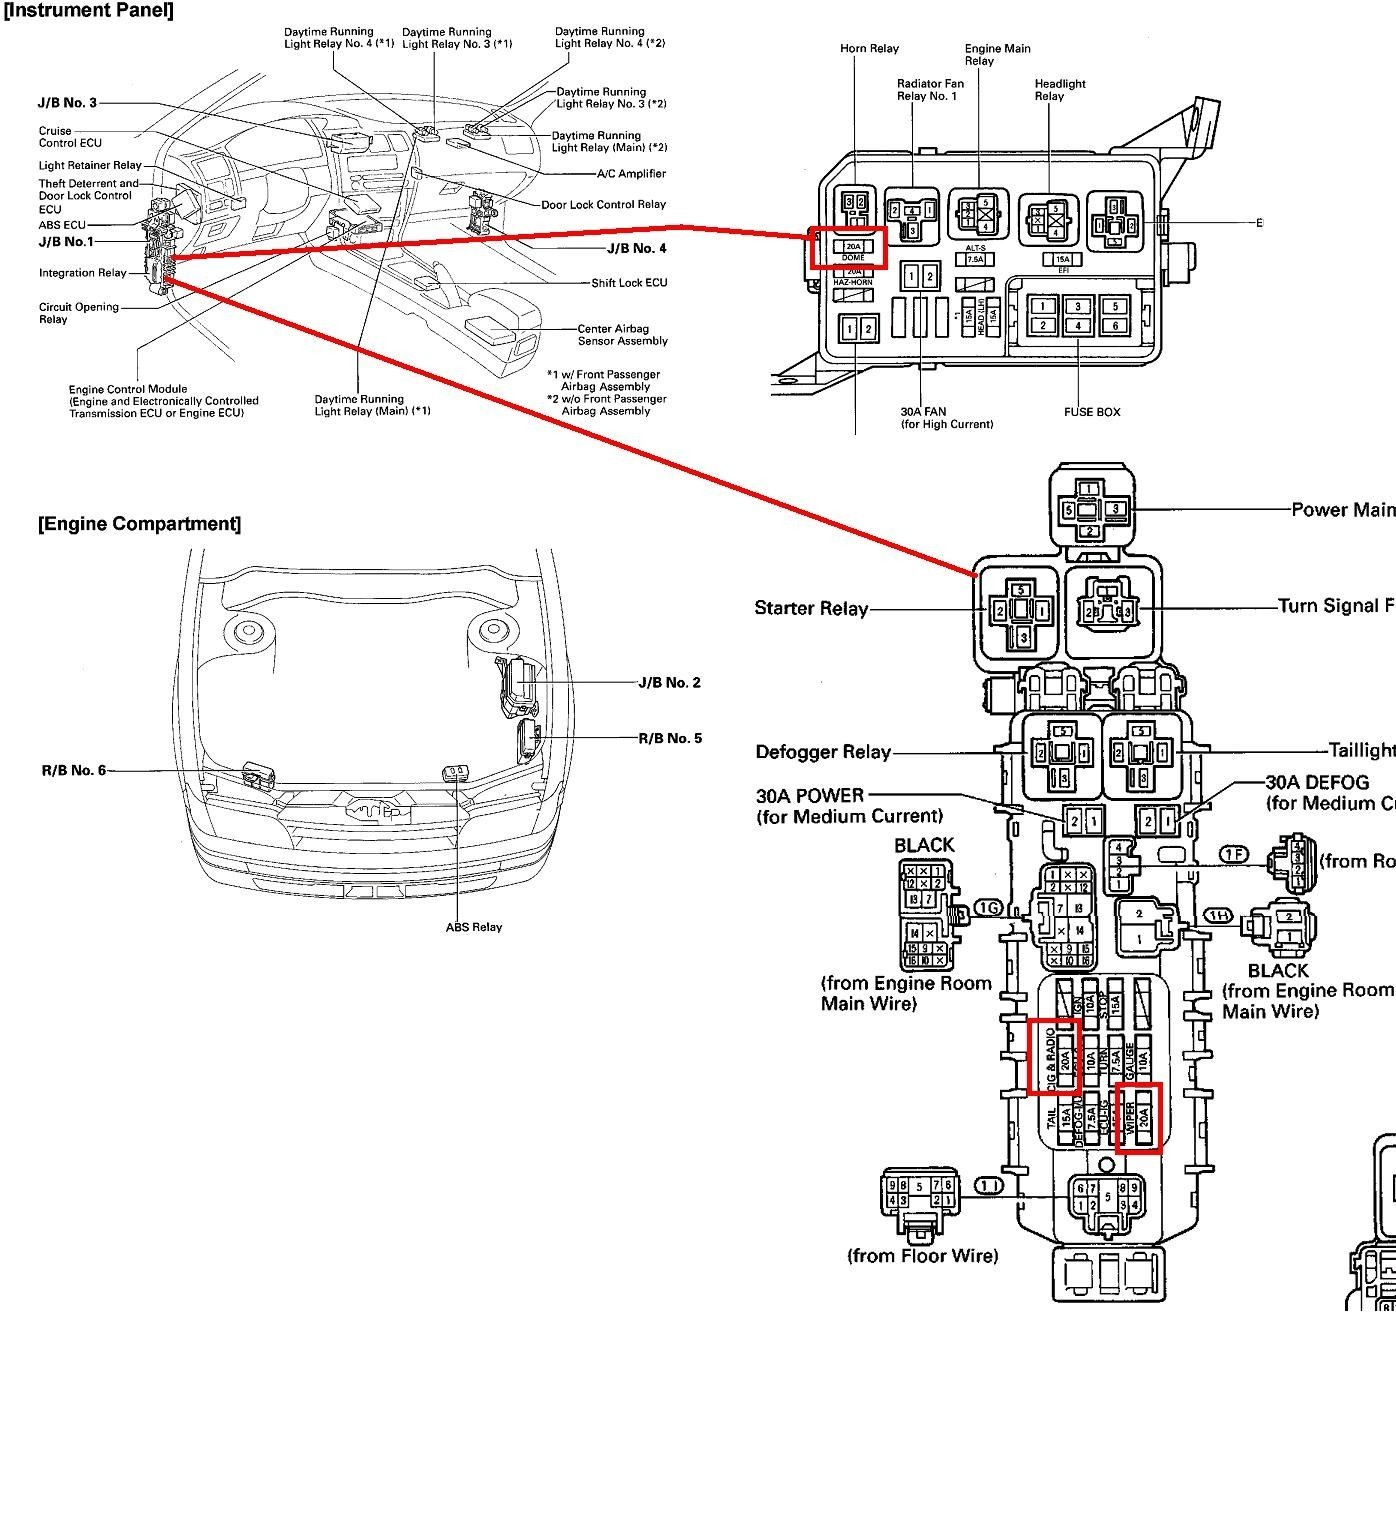 2003 toyota Rav4 Engine Diagram 2004 Corolla Wiring Harness Another Blog About Wiring Diagram • Of 2003 toyota Rav4 Engine Diagram 2001 7 3 Powerstroke Engine Diagram Worksheet and Wiring Diagram •